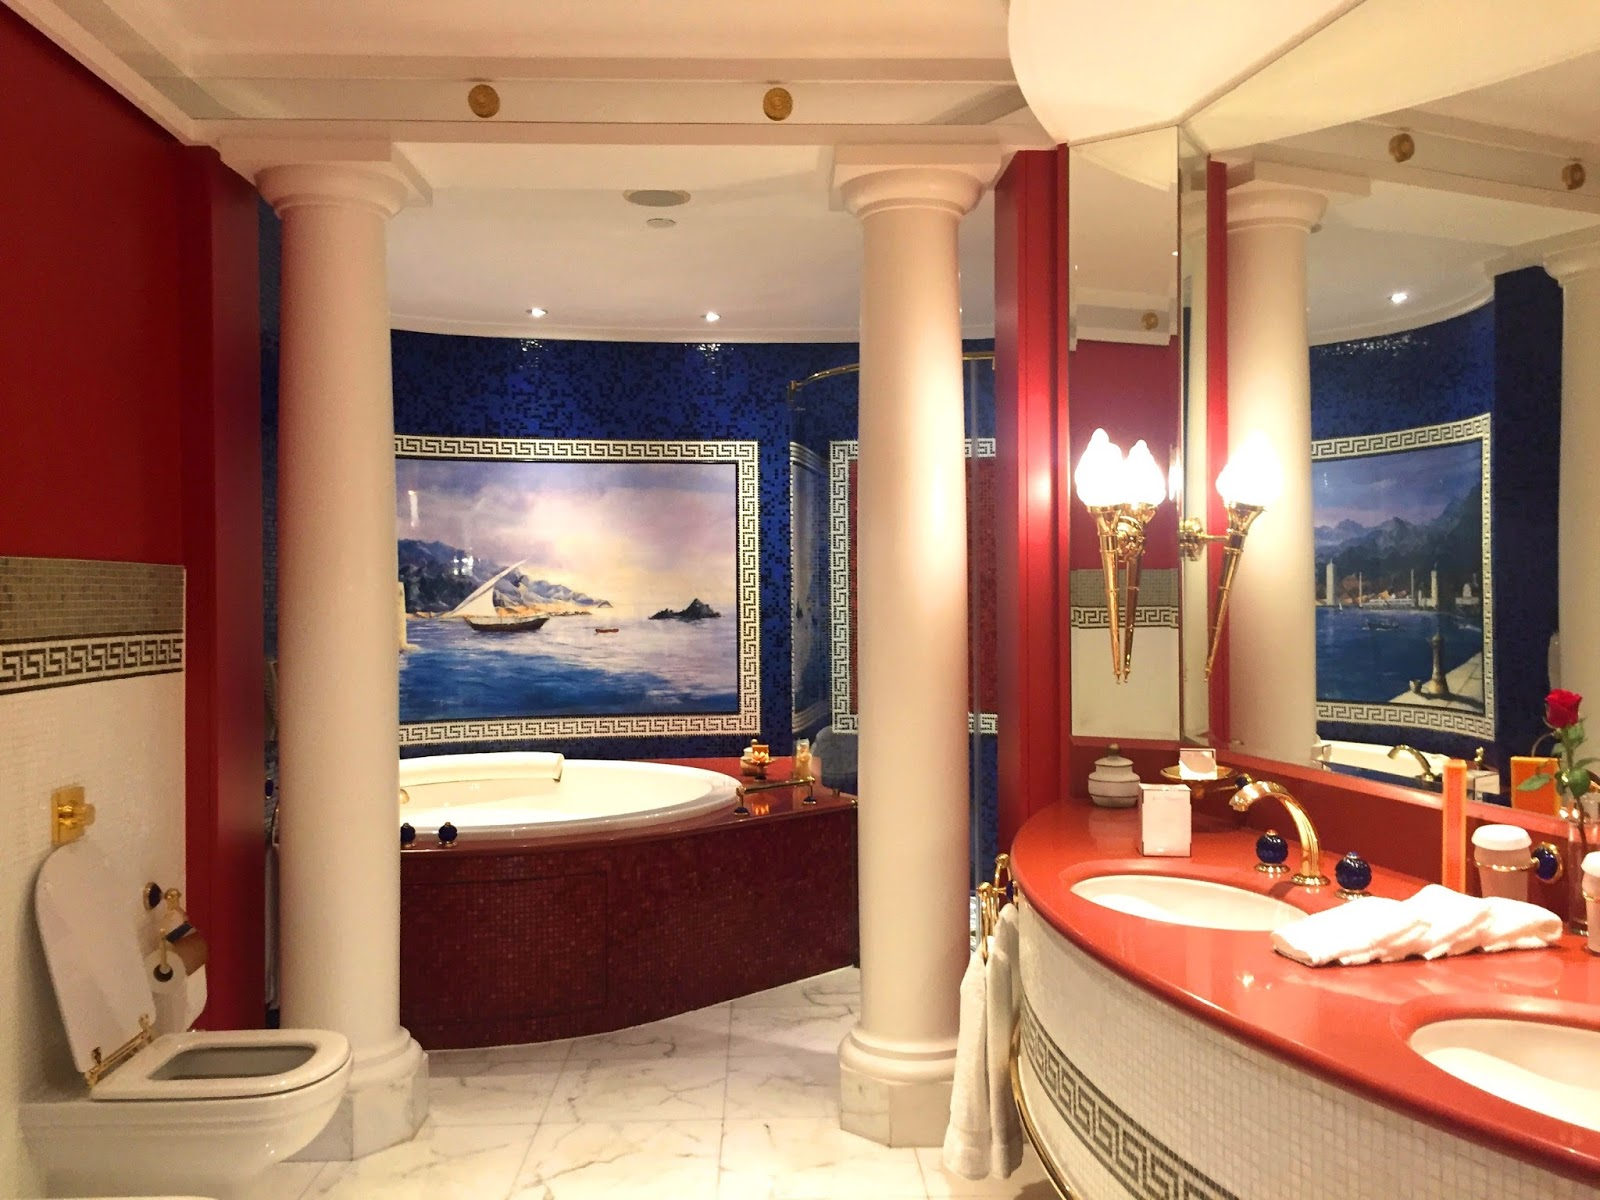 Burj Al Arab Review - The Bathroom - Vegan Dubai Travel - Versace Tiles